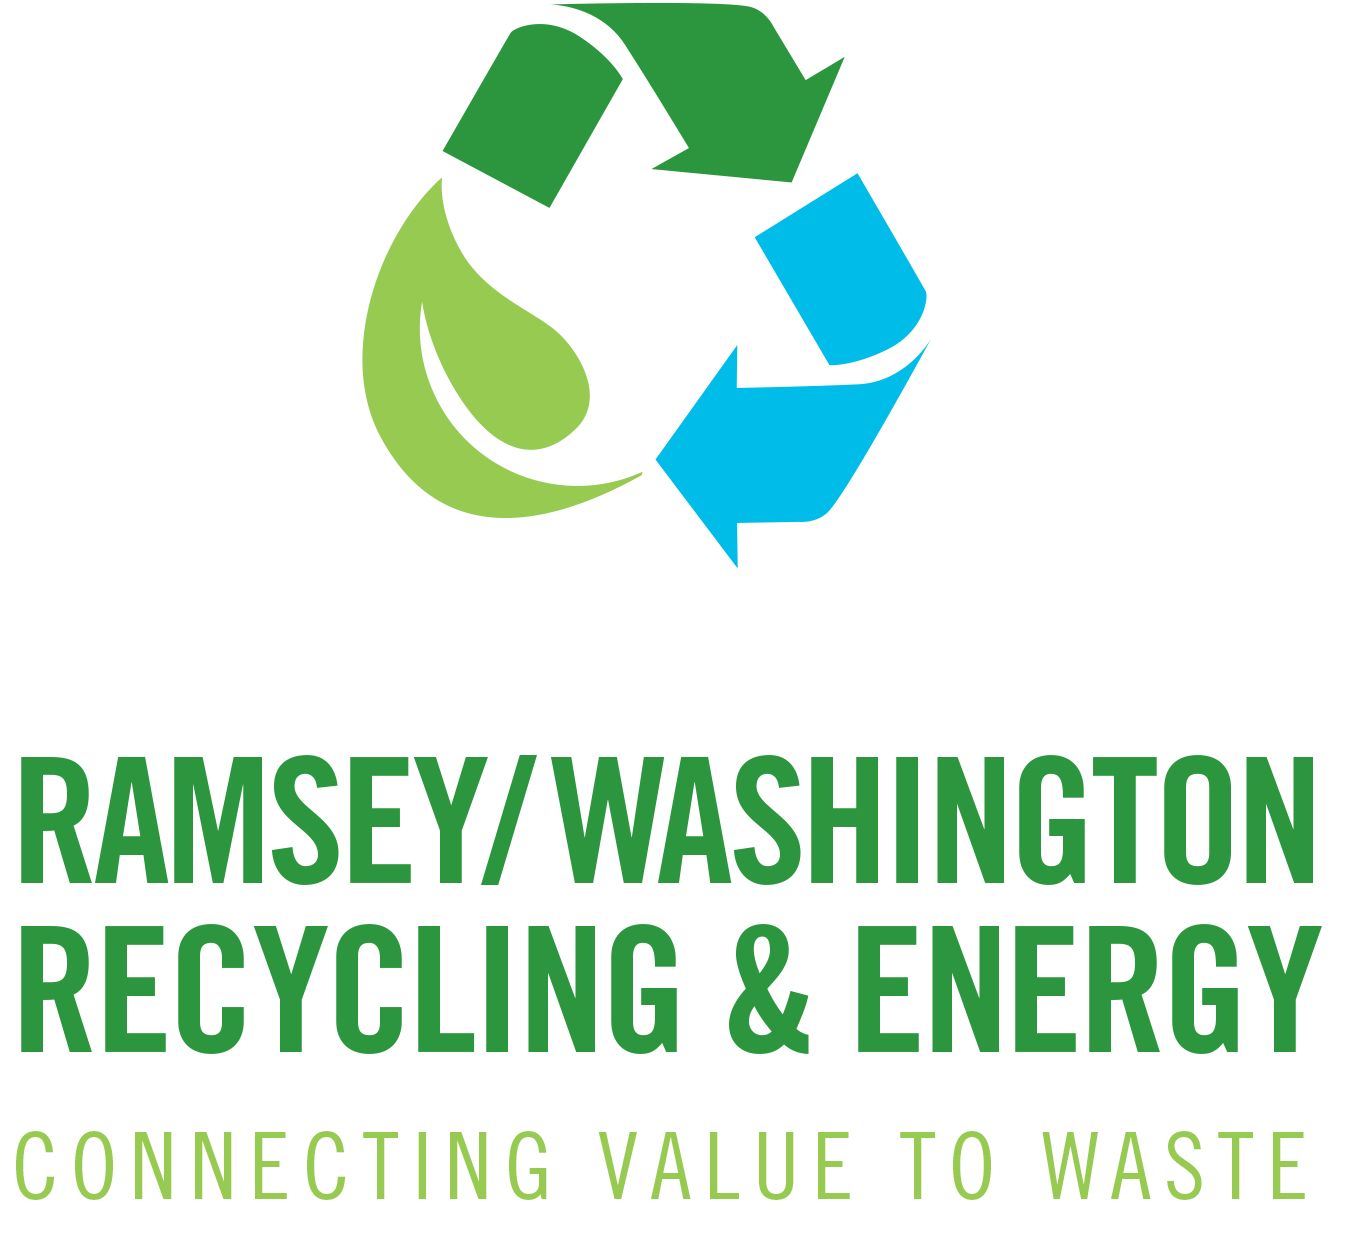 Ramsey/Washington Recycling & Energy